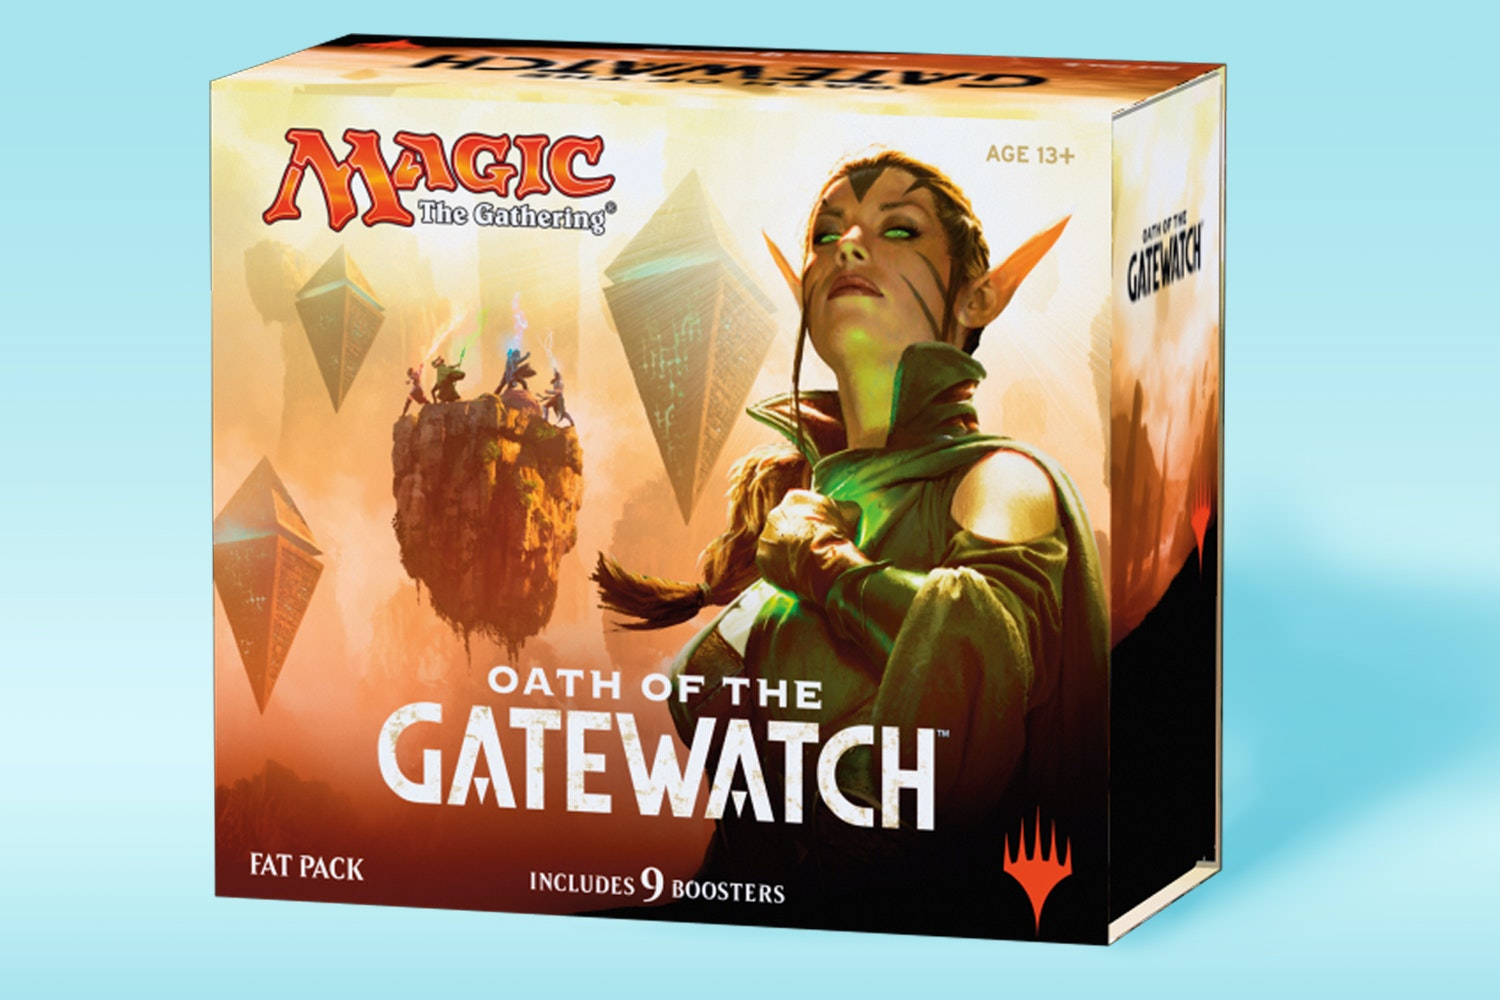 Oath of the Gatewatch Booster Box + Fat Pack